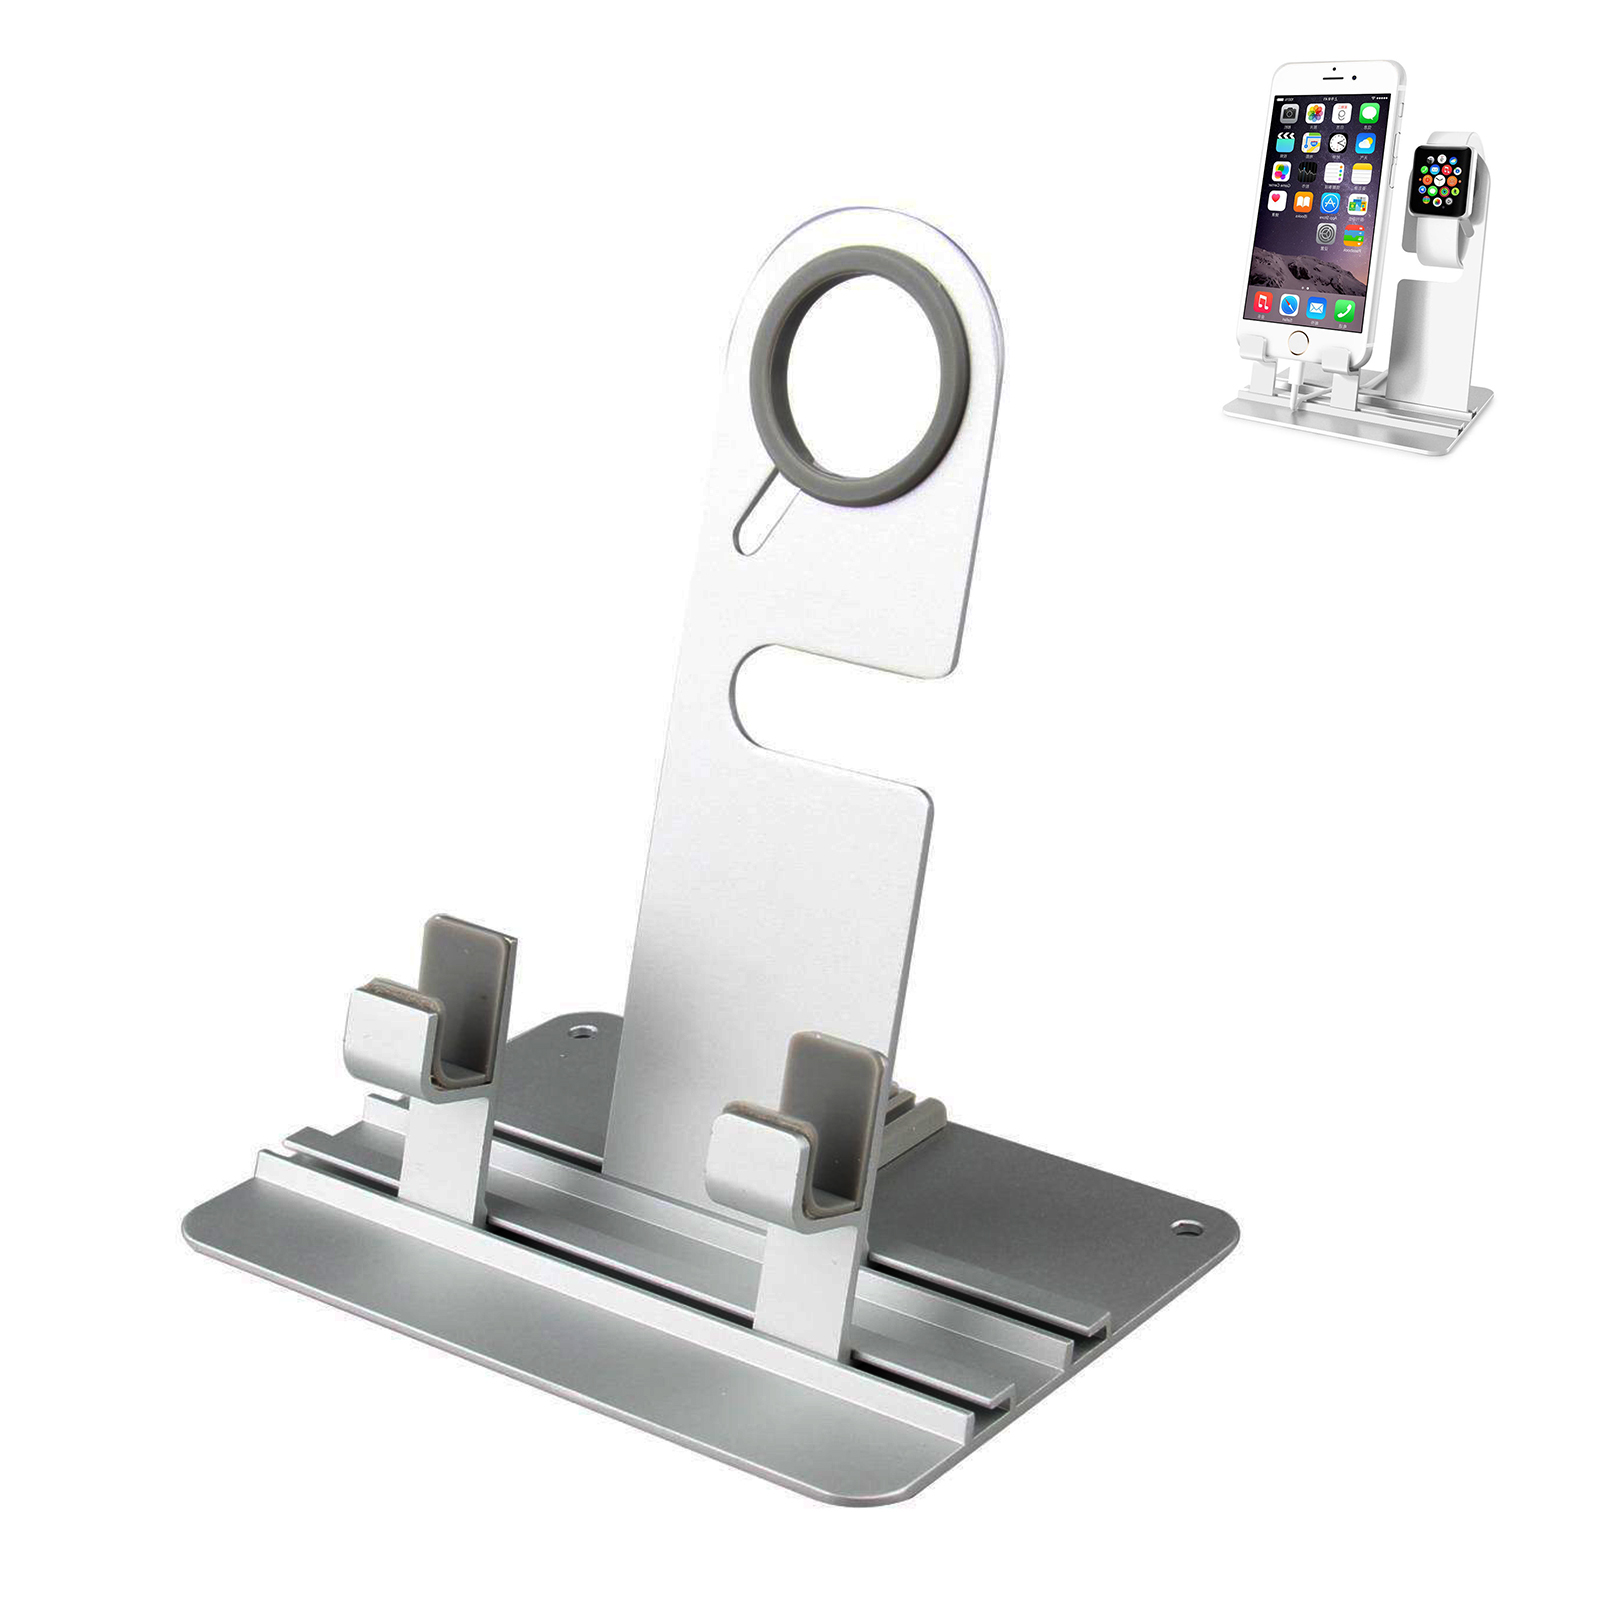 Apple Watch Charger Stand, TSV iPhone Dock,Aluminum Charging Dock Holder Station for Apple iWatch Series 2/Series 1 and iPhone